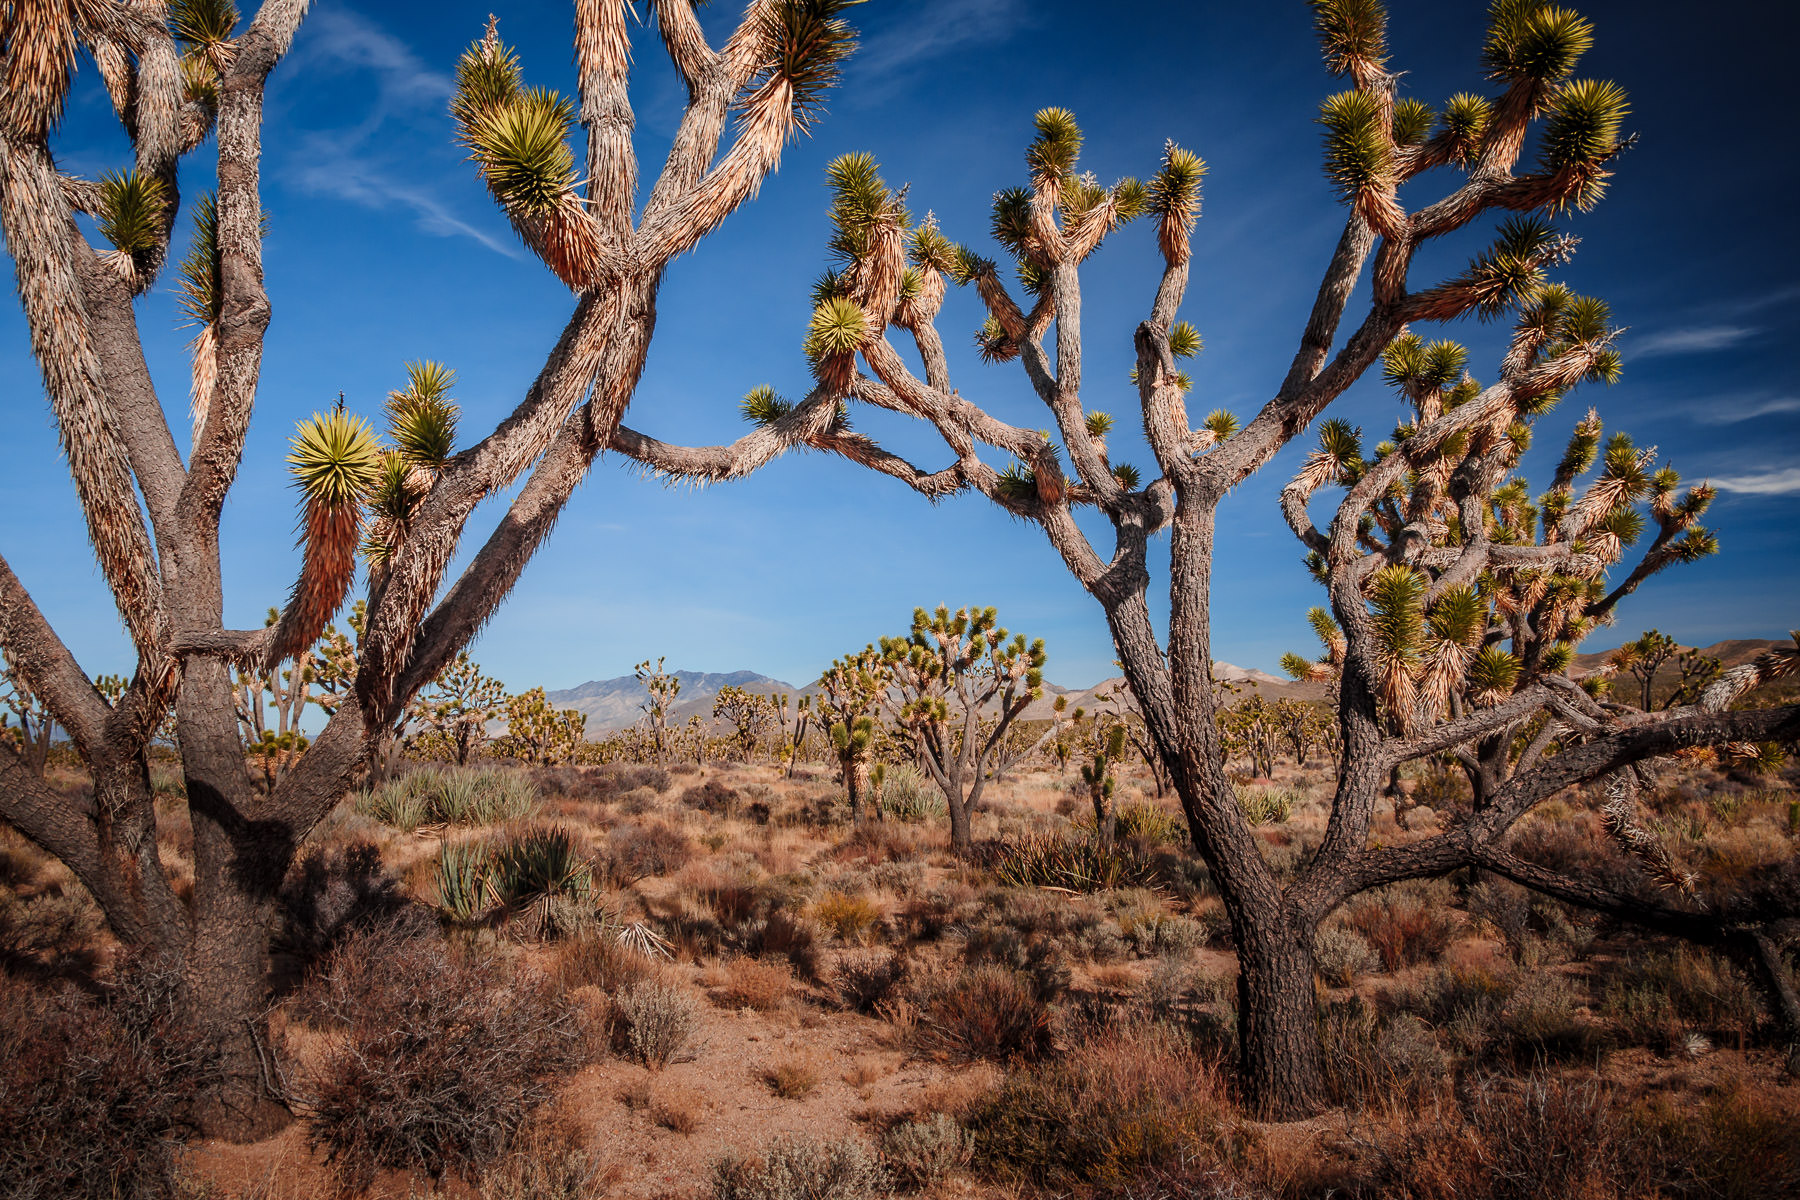 Joshua trees grow in the desert of California's Mojave National Preserve.